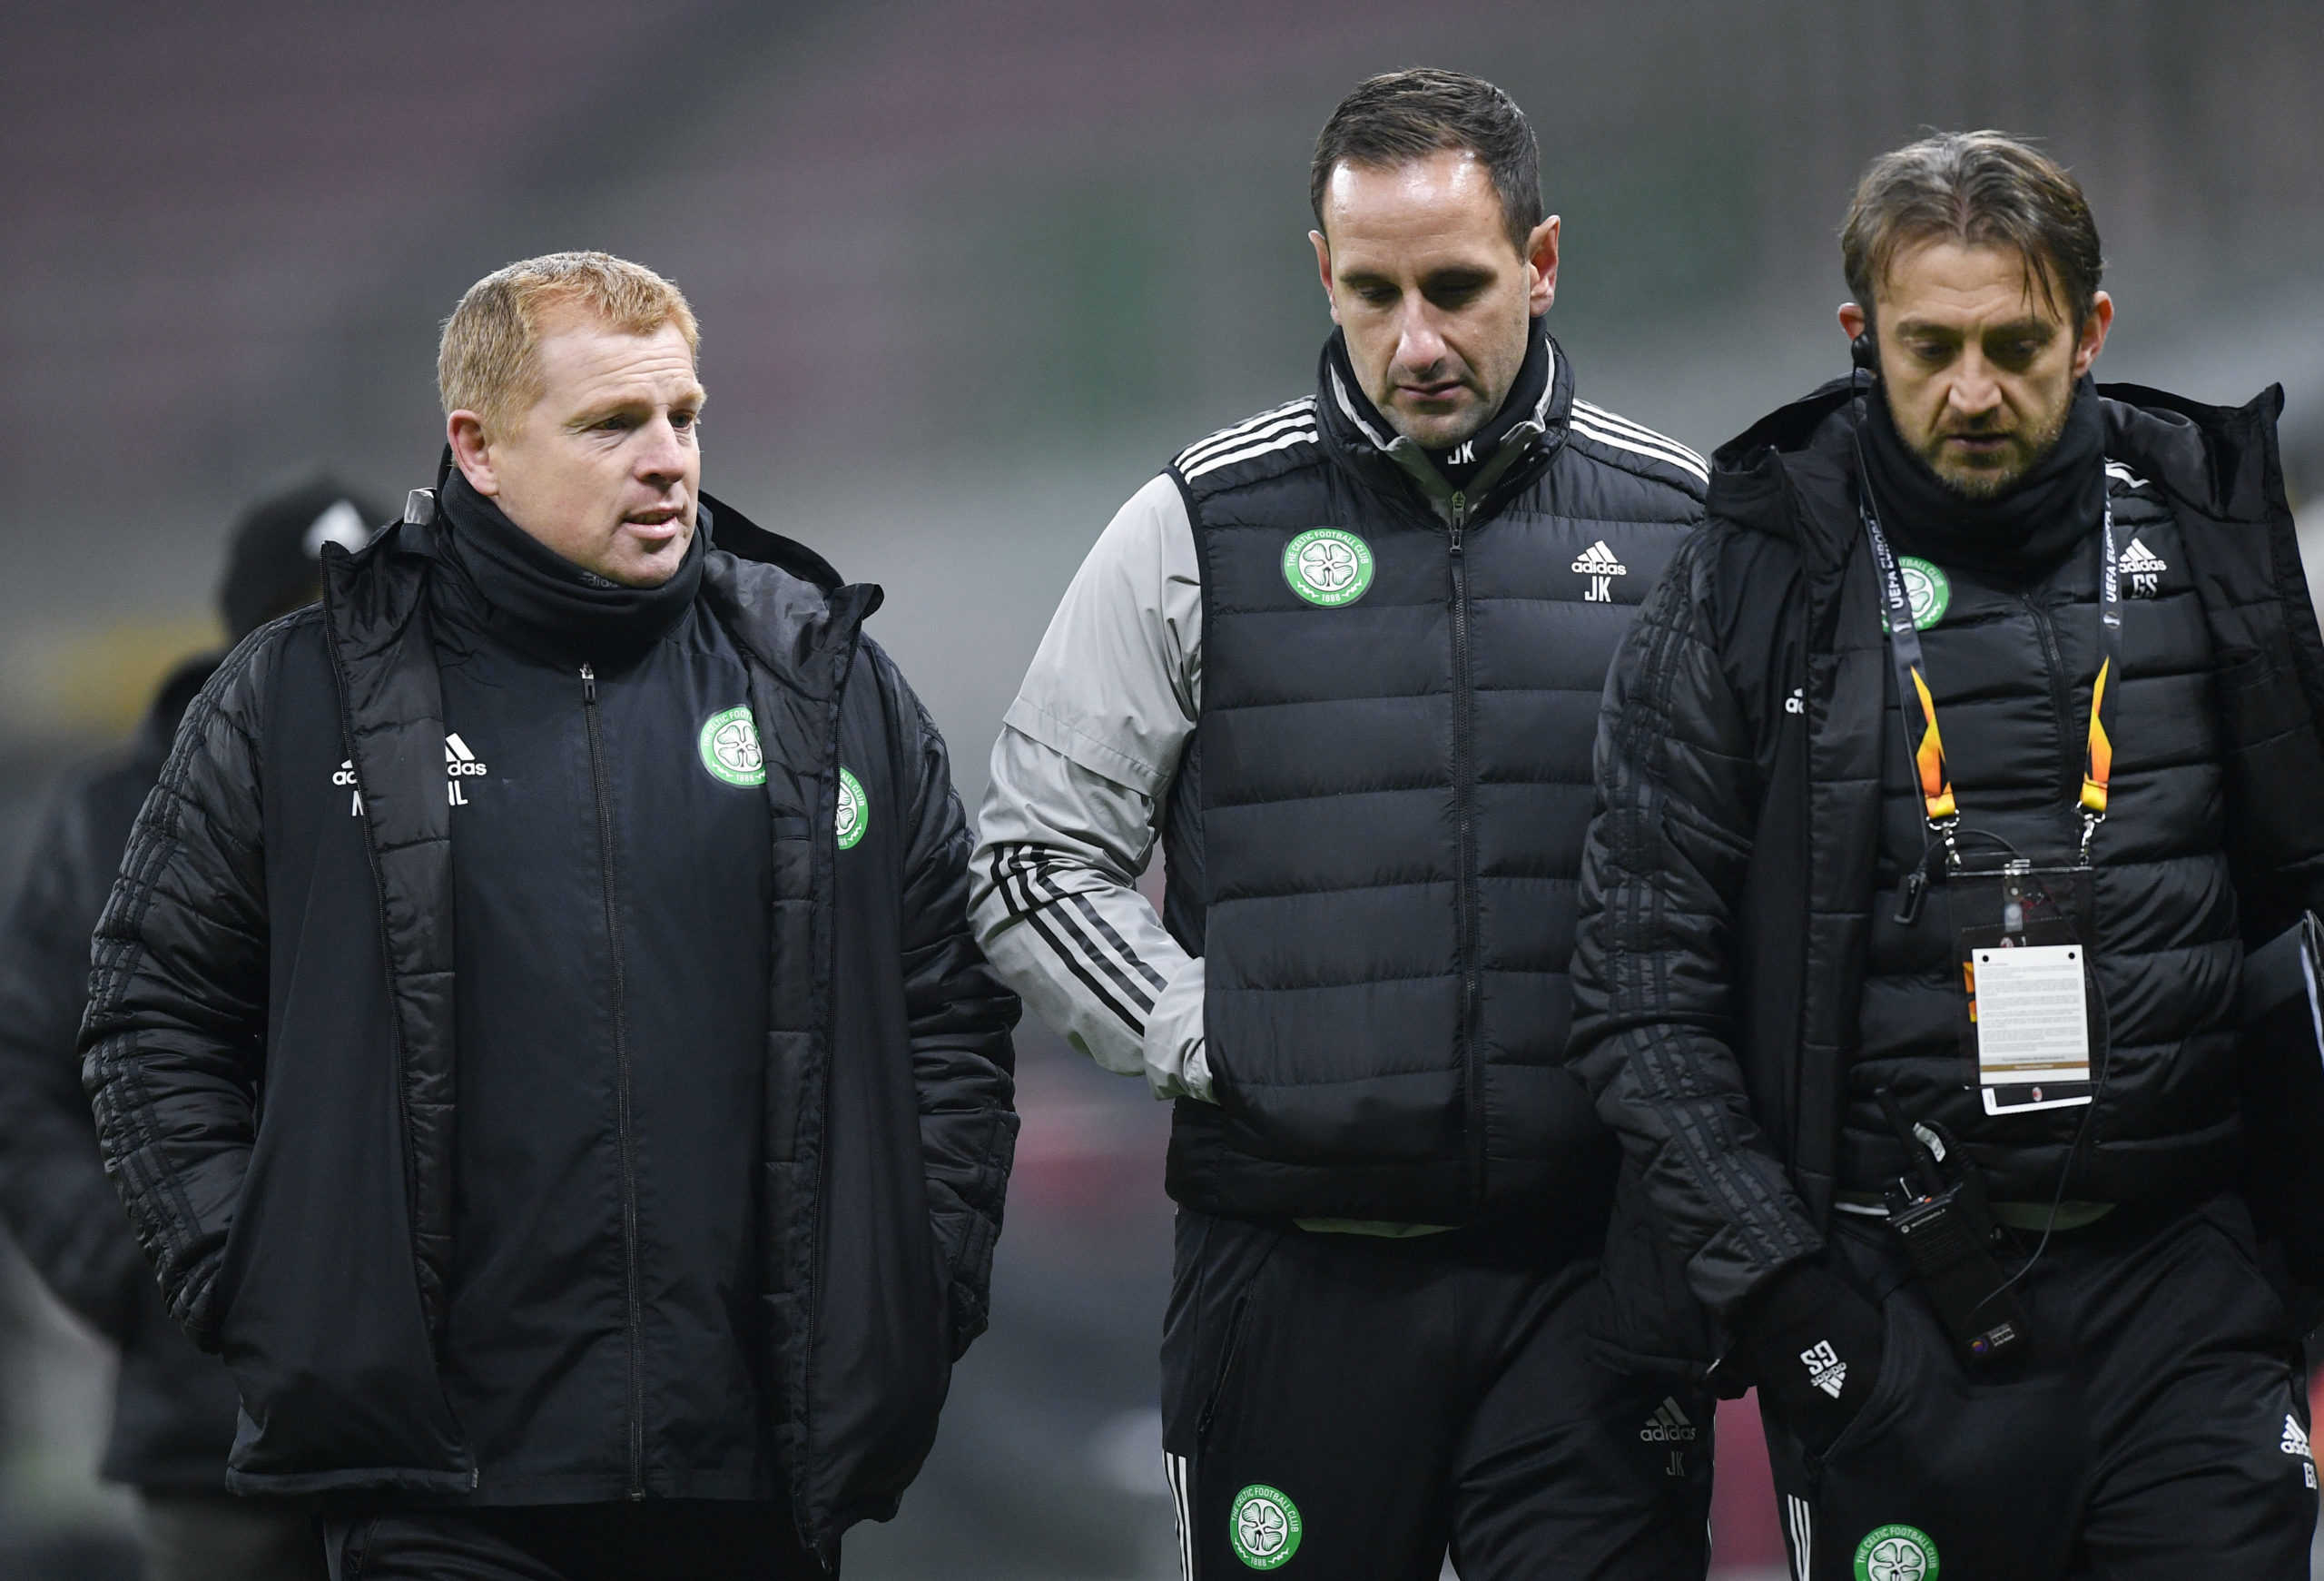 The Celtic coaching staff